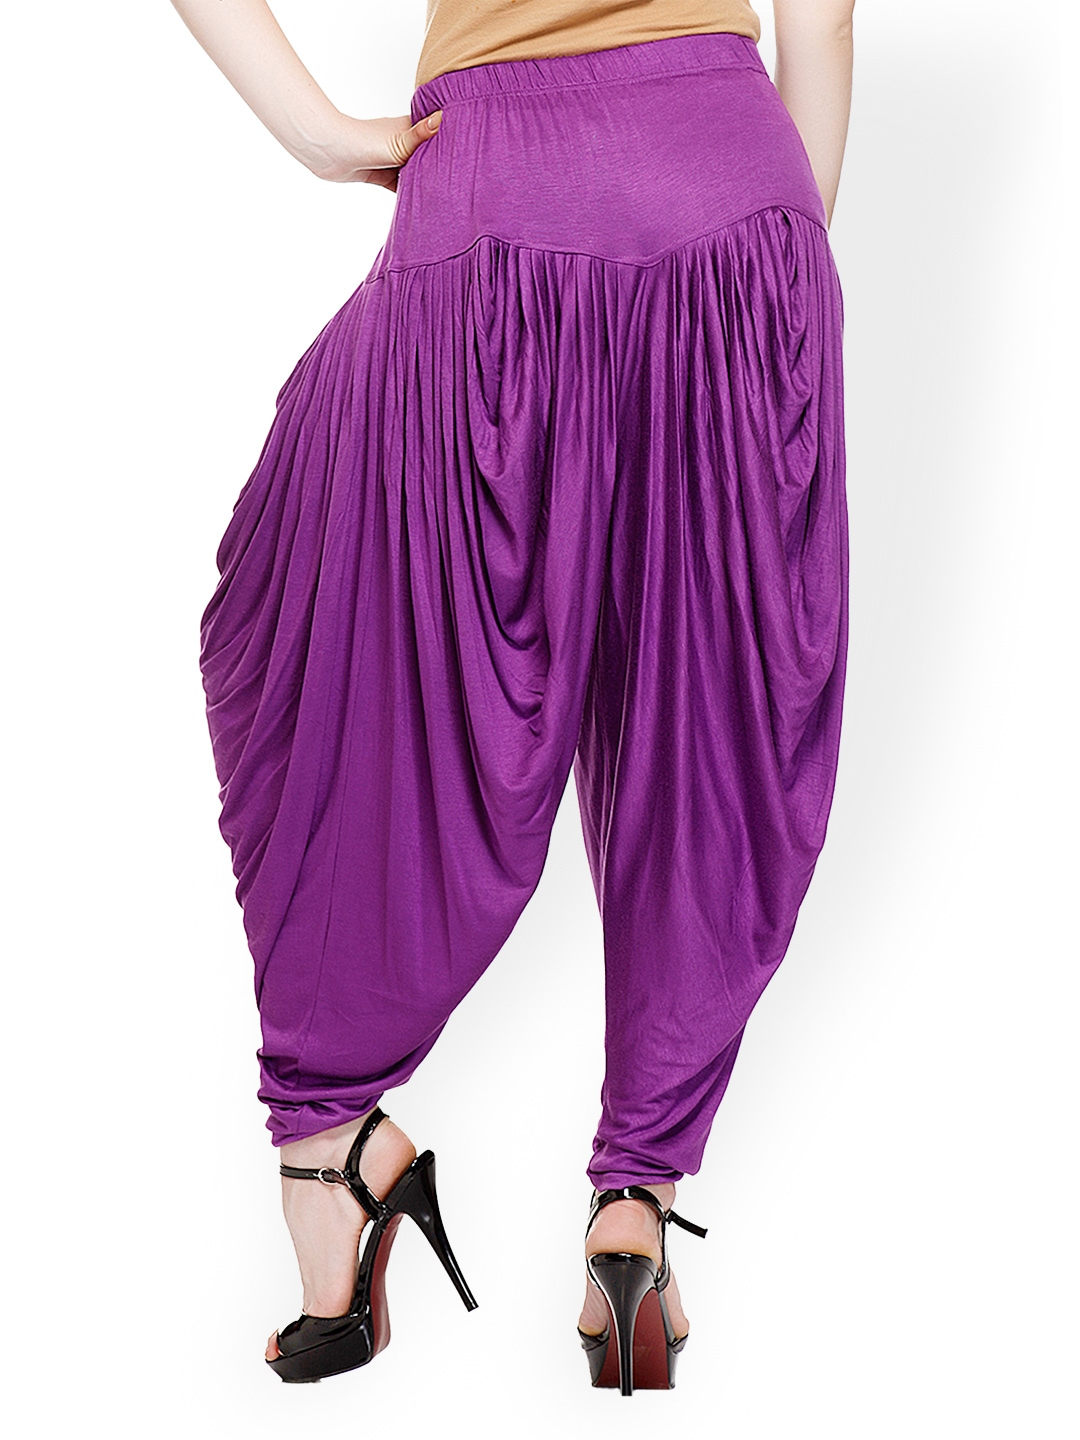 Latest Collection of Harem pants online for women and girls, available in authentic colors like black and white including Harem trousers patterns like denim, plus size and silk at cheap prices in India.